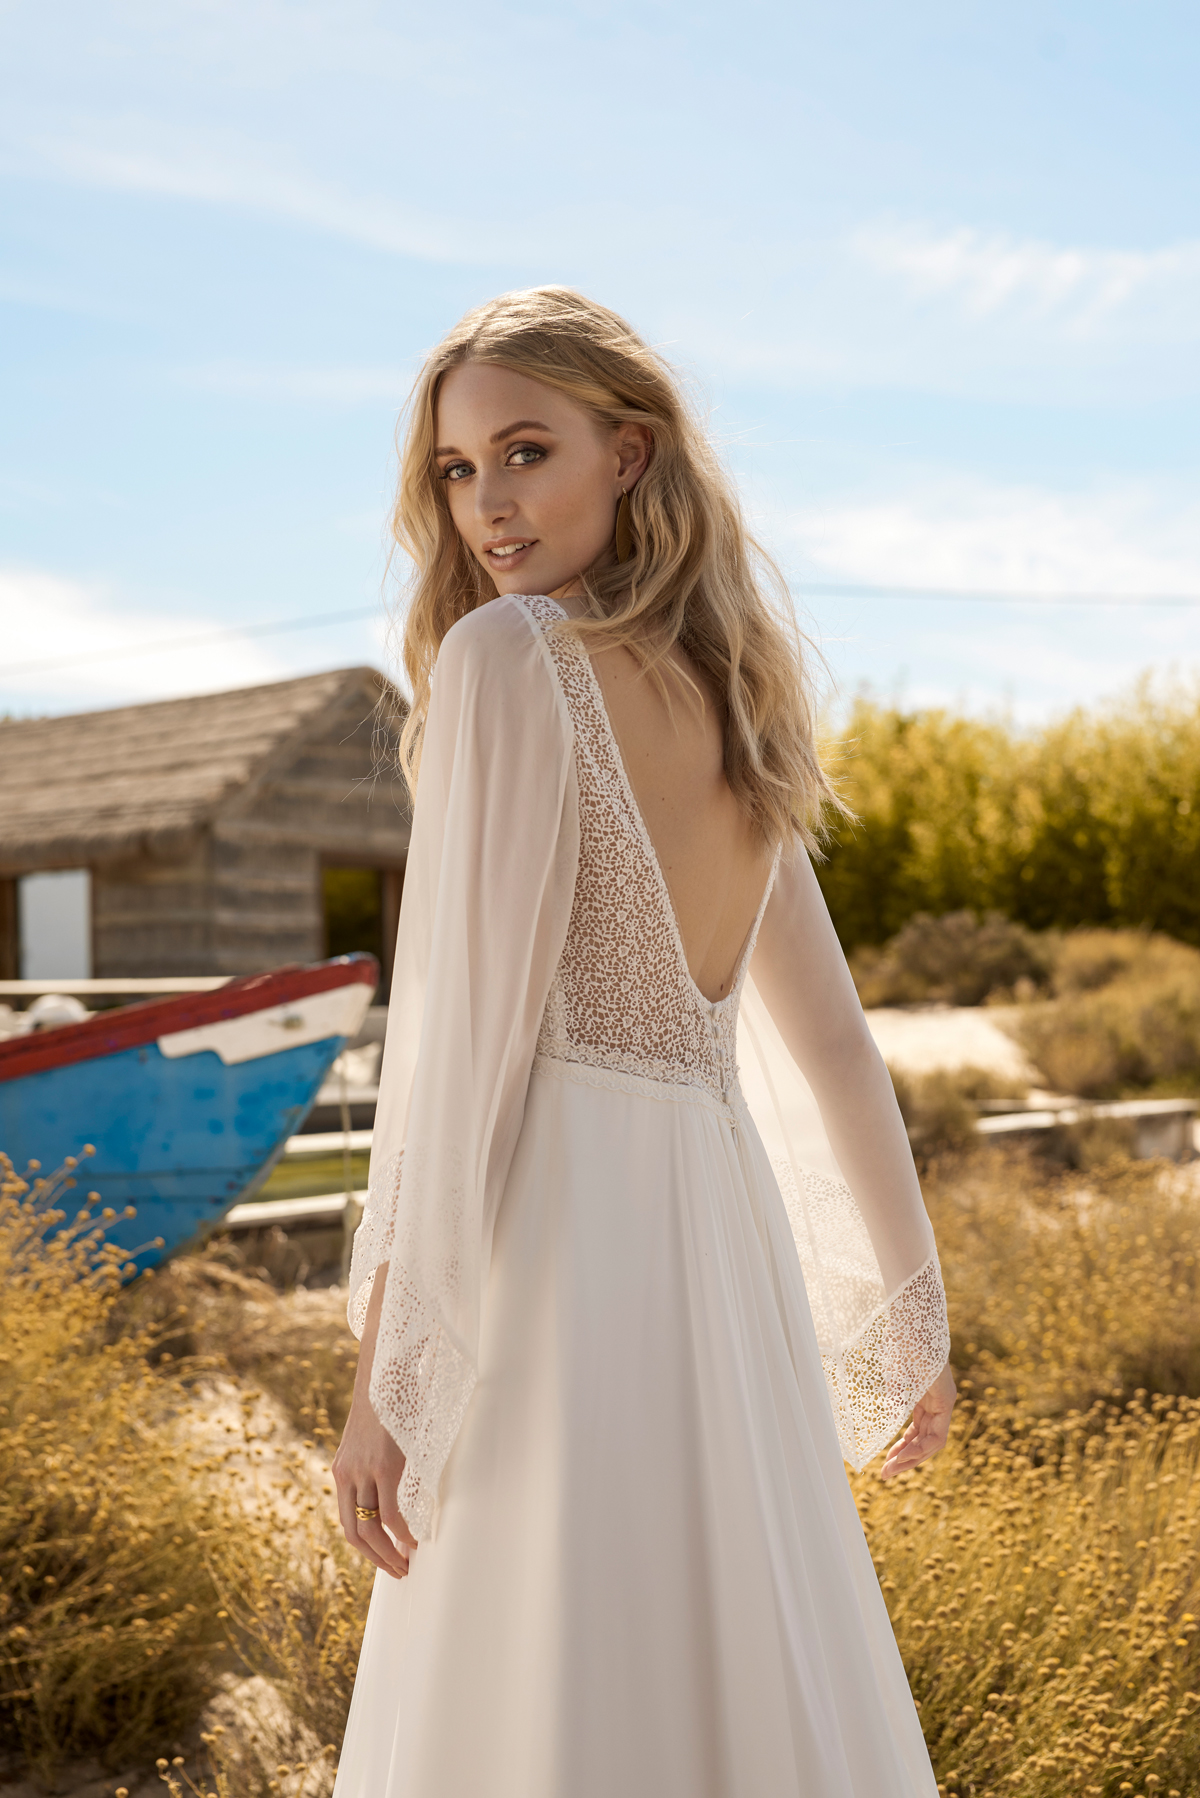 28a7dbac02 Rembo styling Ginger C back HR - Rembo Styling - Sophisticated Bohemian  Bridal Style for 2018